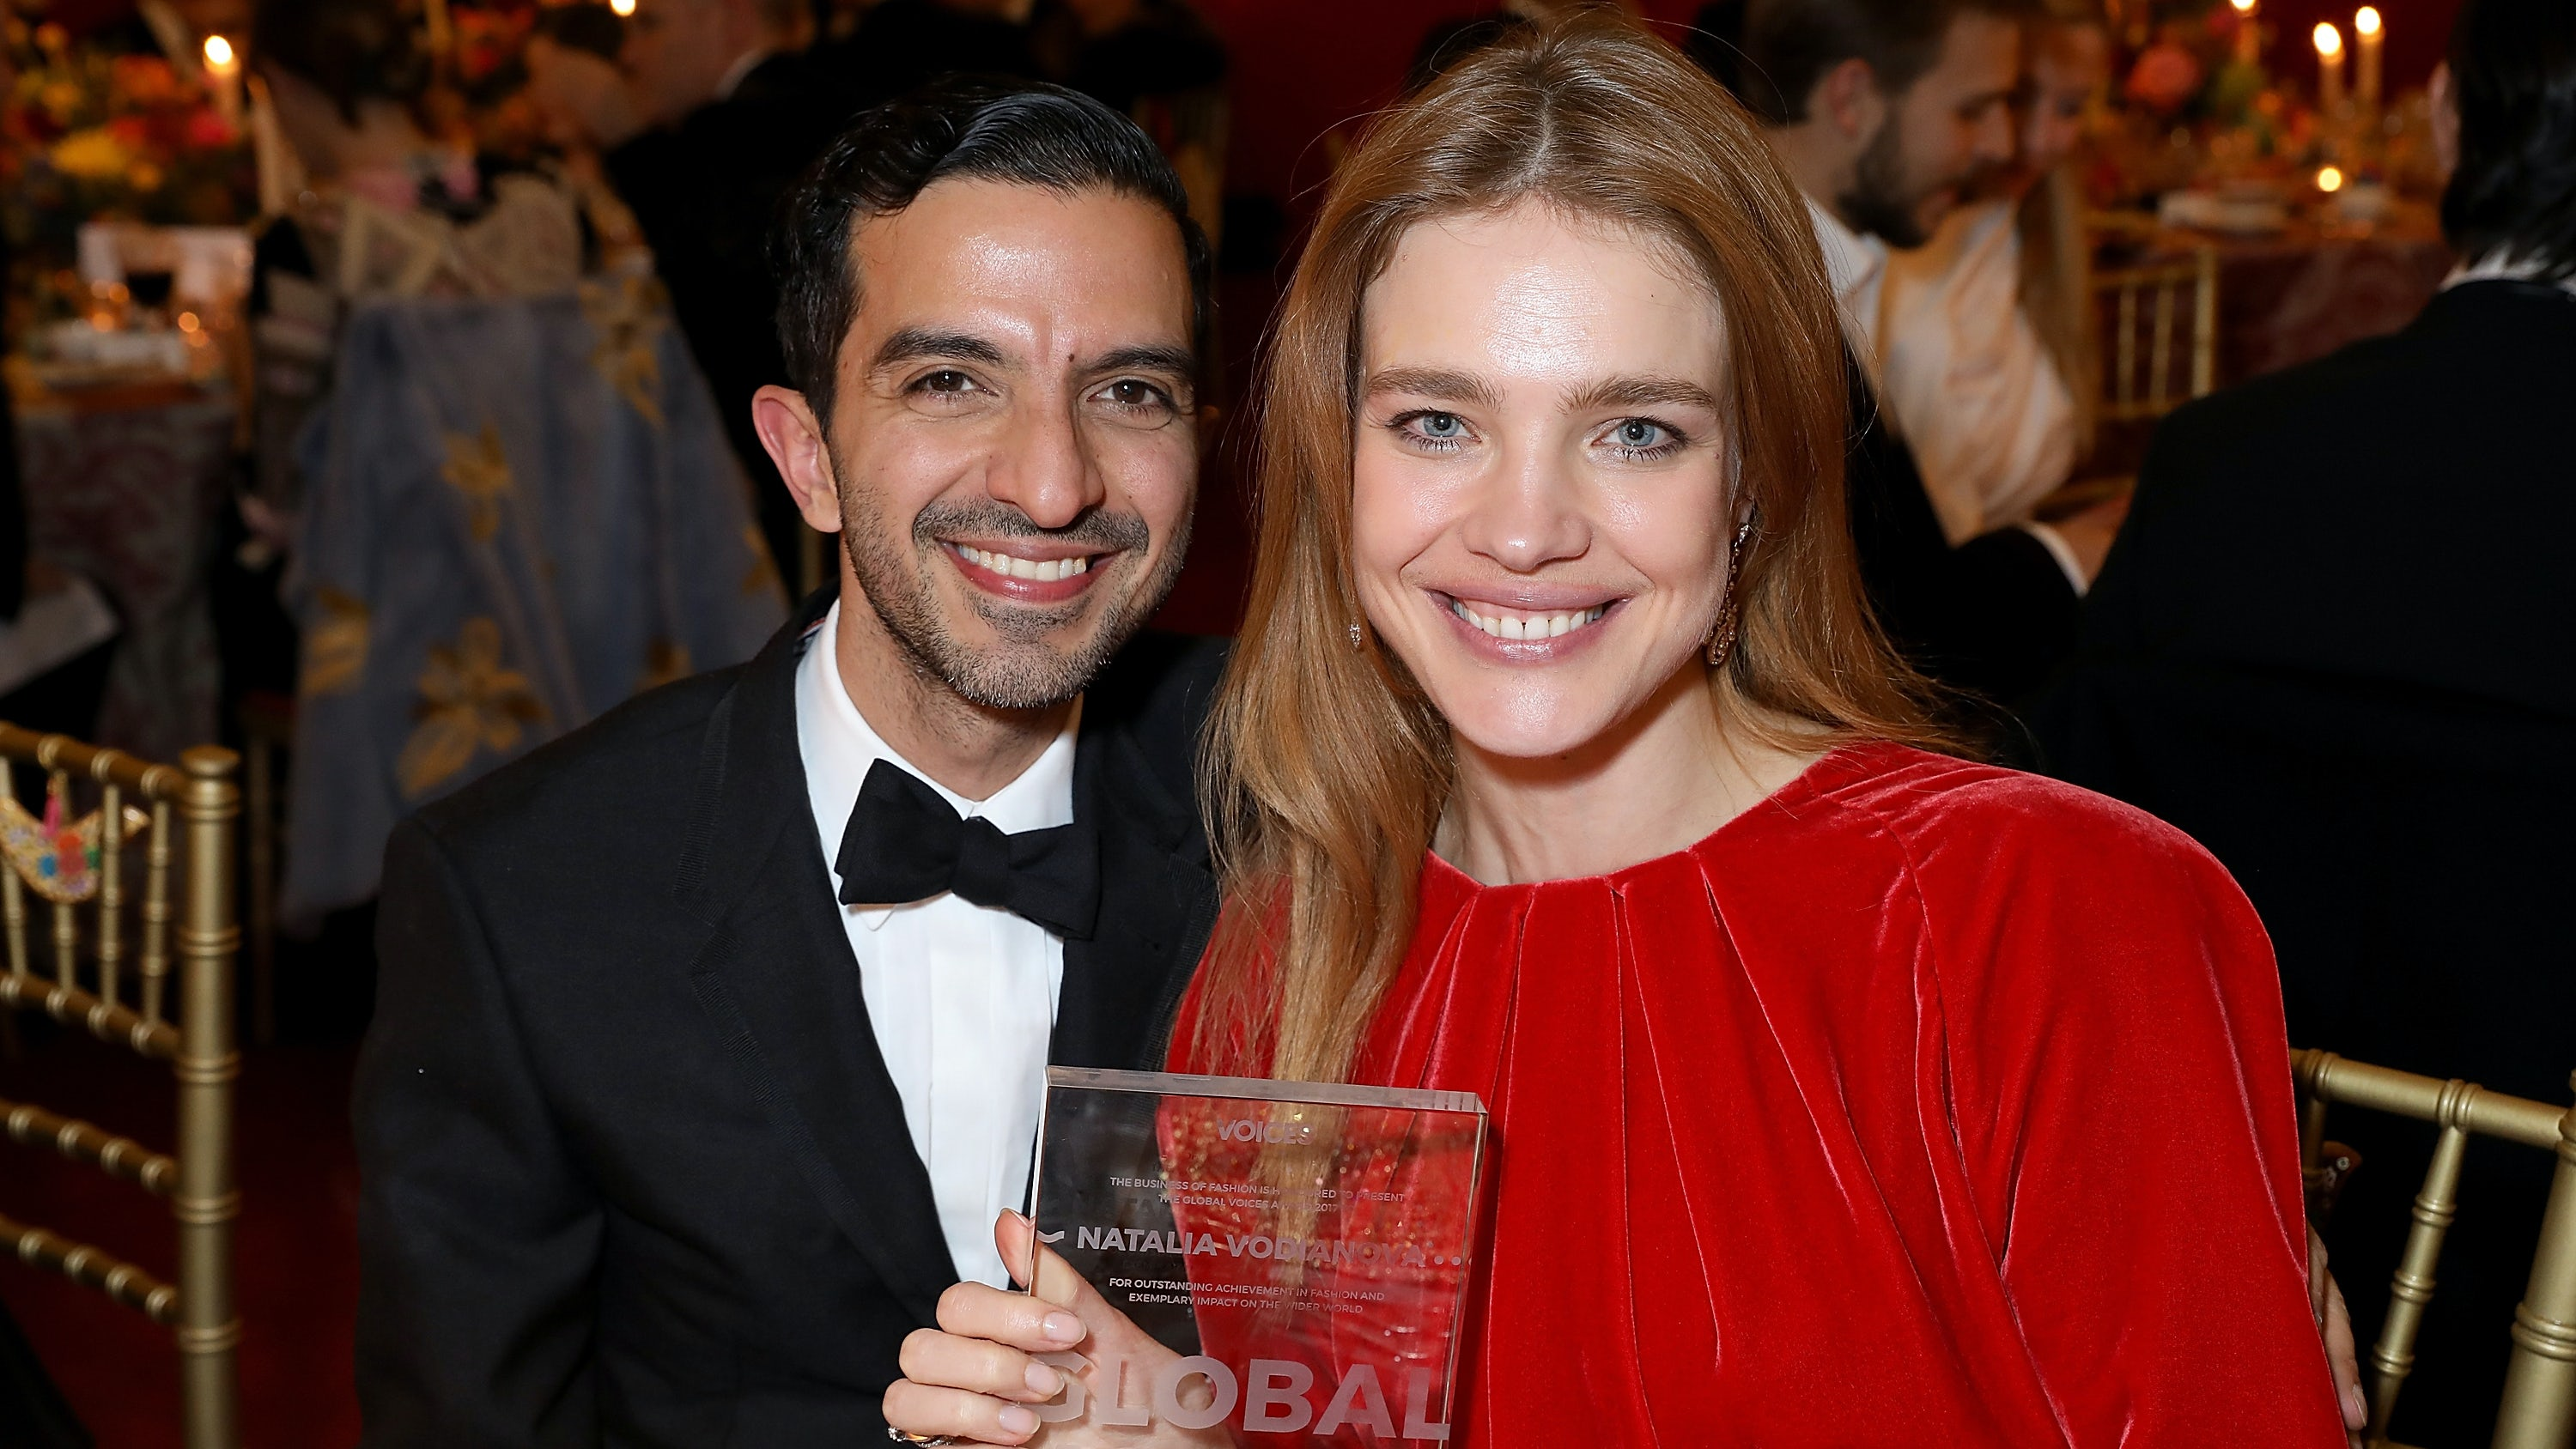 Imran Amed and Natalia Vodianova at the gala dinner during #BoFVOICES | Source: Darren Gerrish/Getty Images